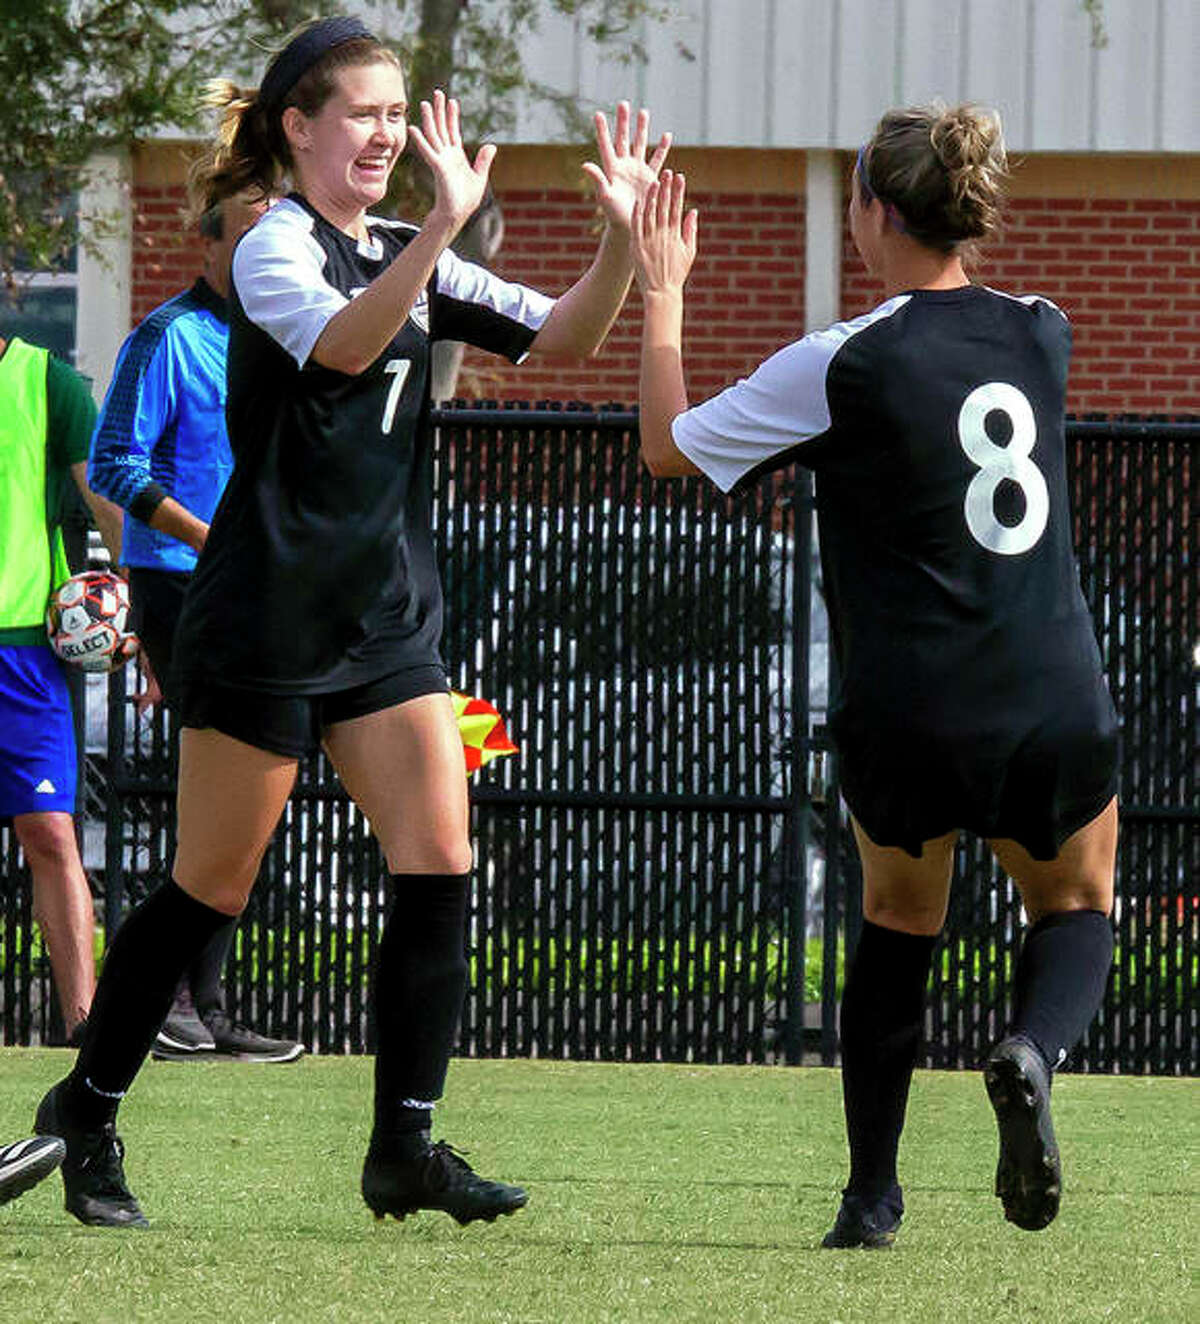 LCCC's Chelsea Riden (7) is congratulated by teammate Kara Crutchley (8) after Riden's second-half goal in the 2019 NJCAA national semifinal game in Melbourne, Fla. Riden and Crutchley return this season, which will begin Saturday at home against Triton College.